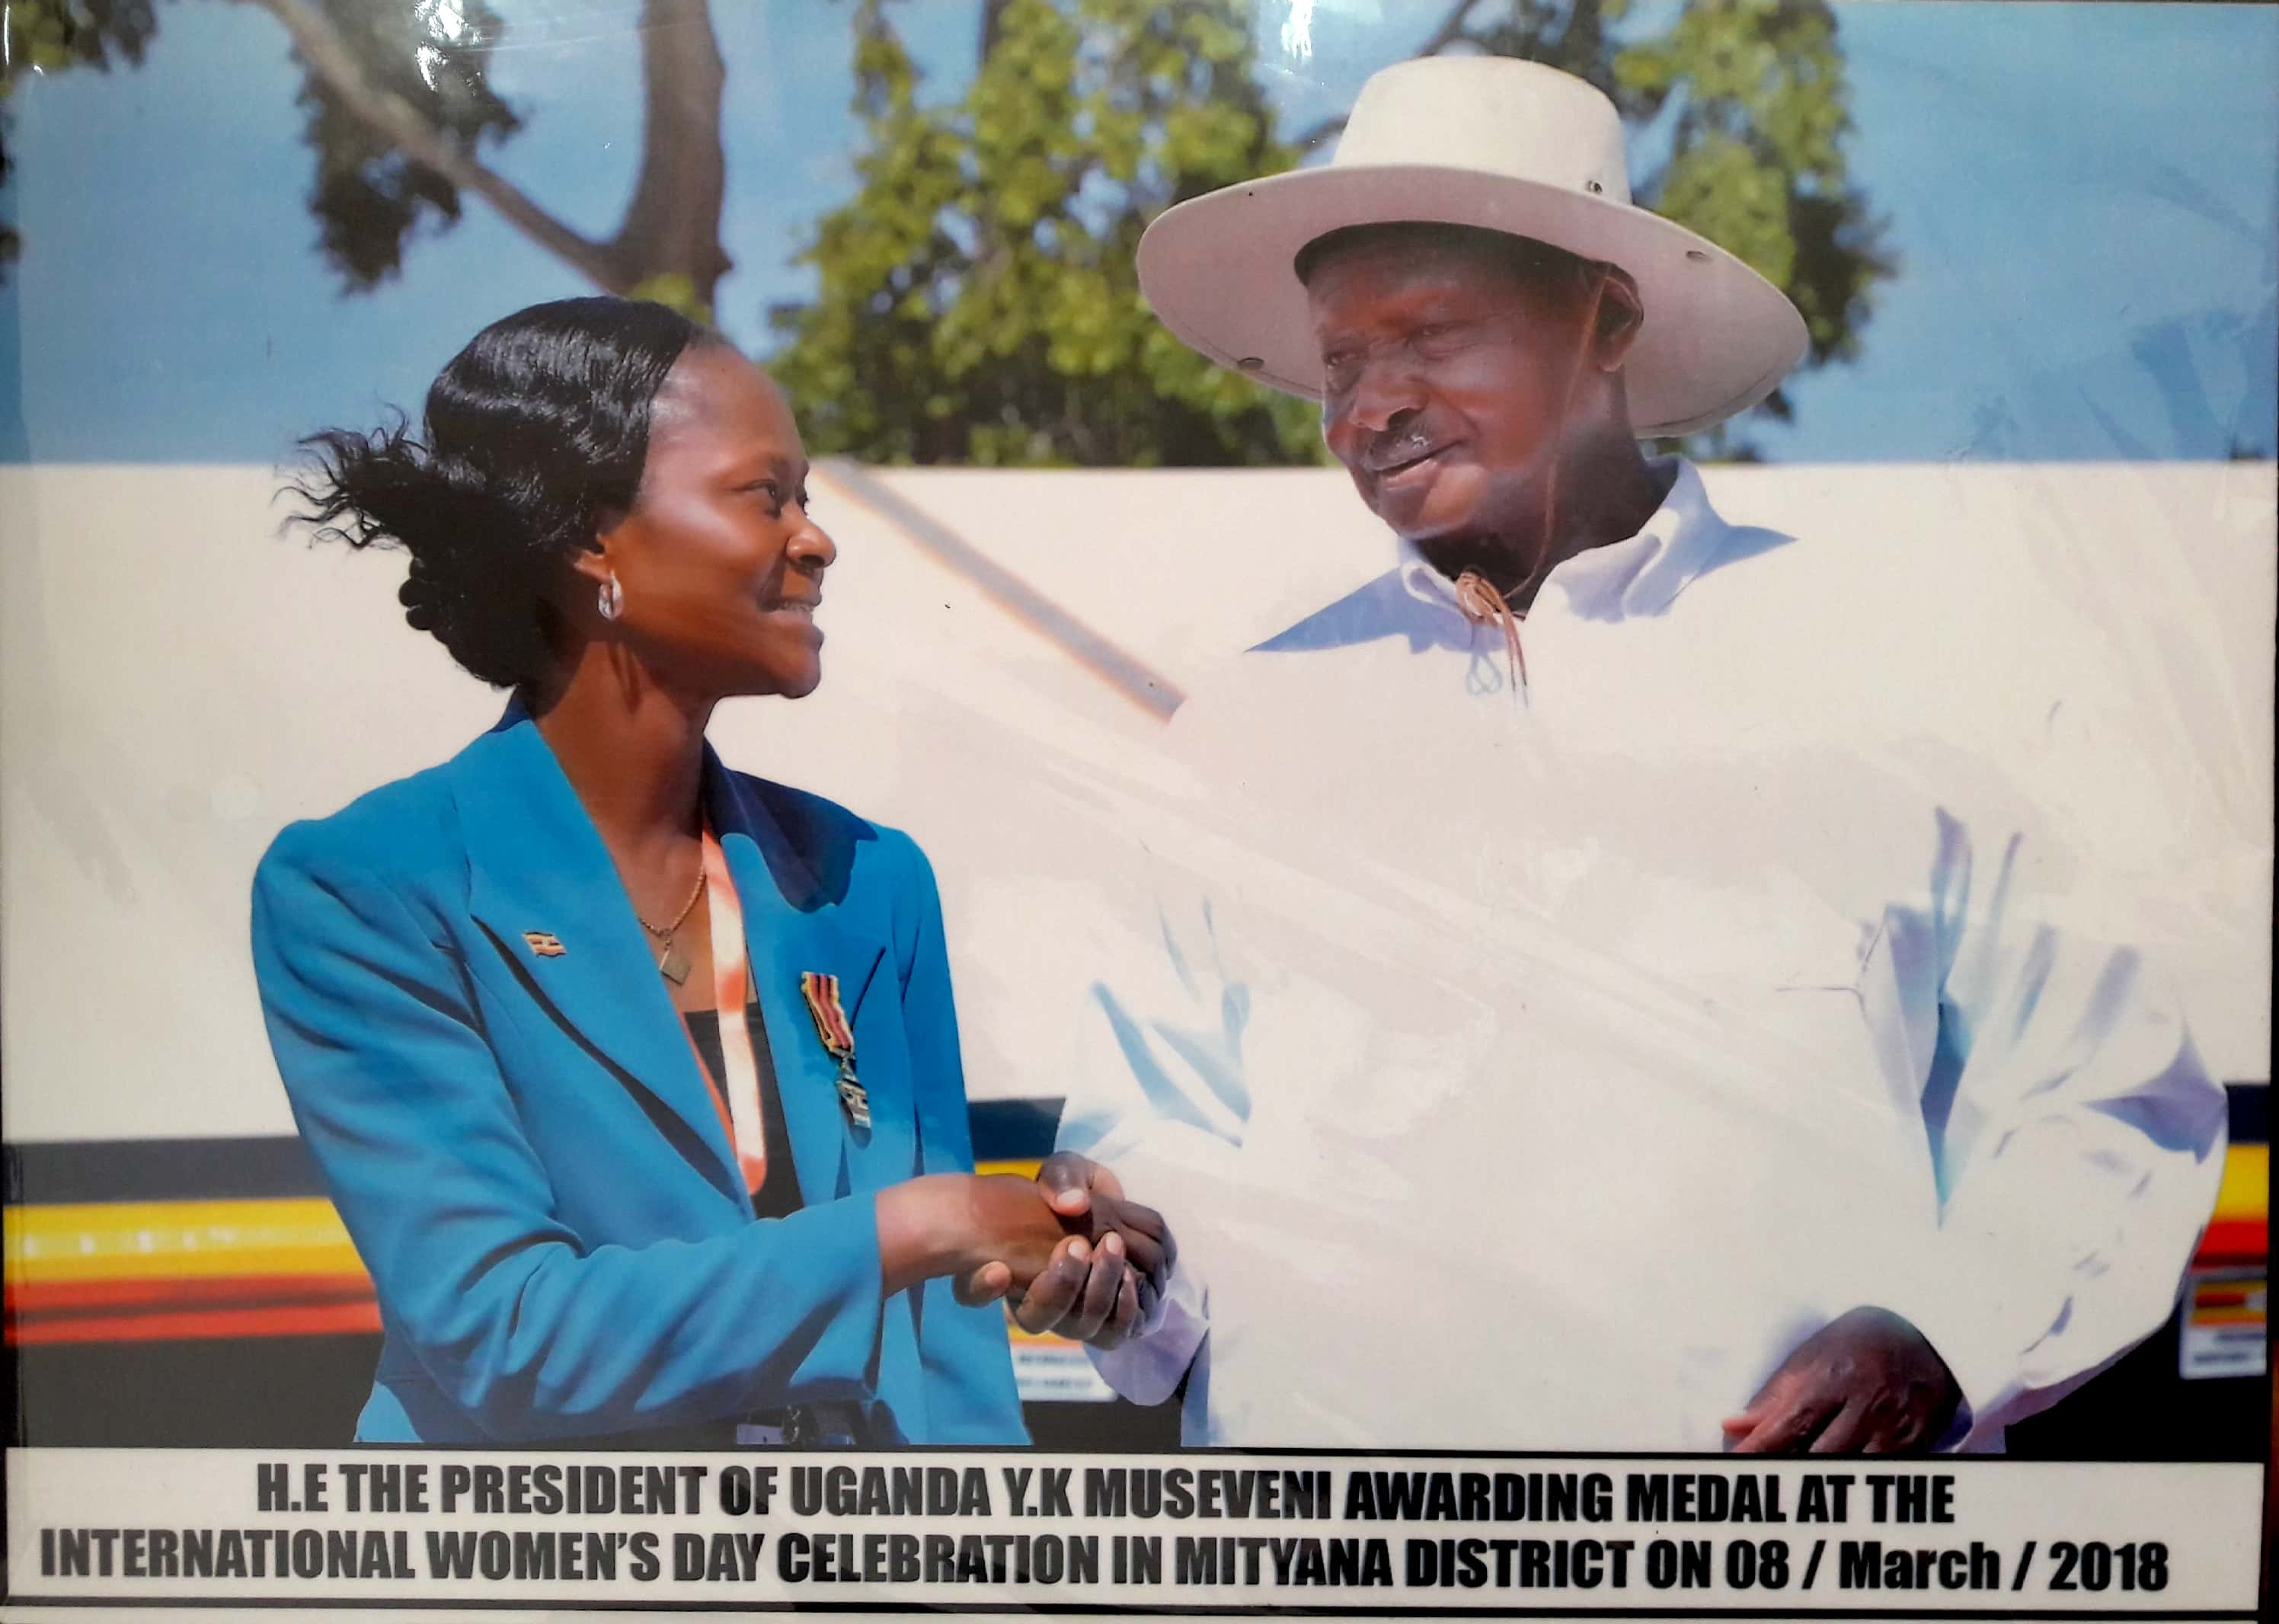 Dr. Robinah Kulabako shaking the hand of President Yoweri Museveni after receiving her National Medal on March 2018, International Women's Day.